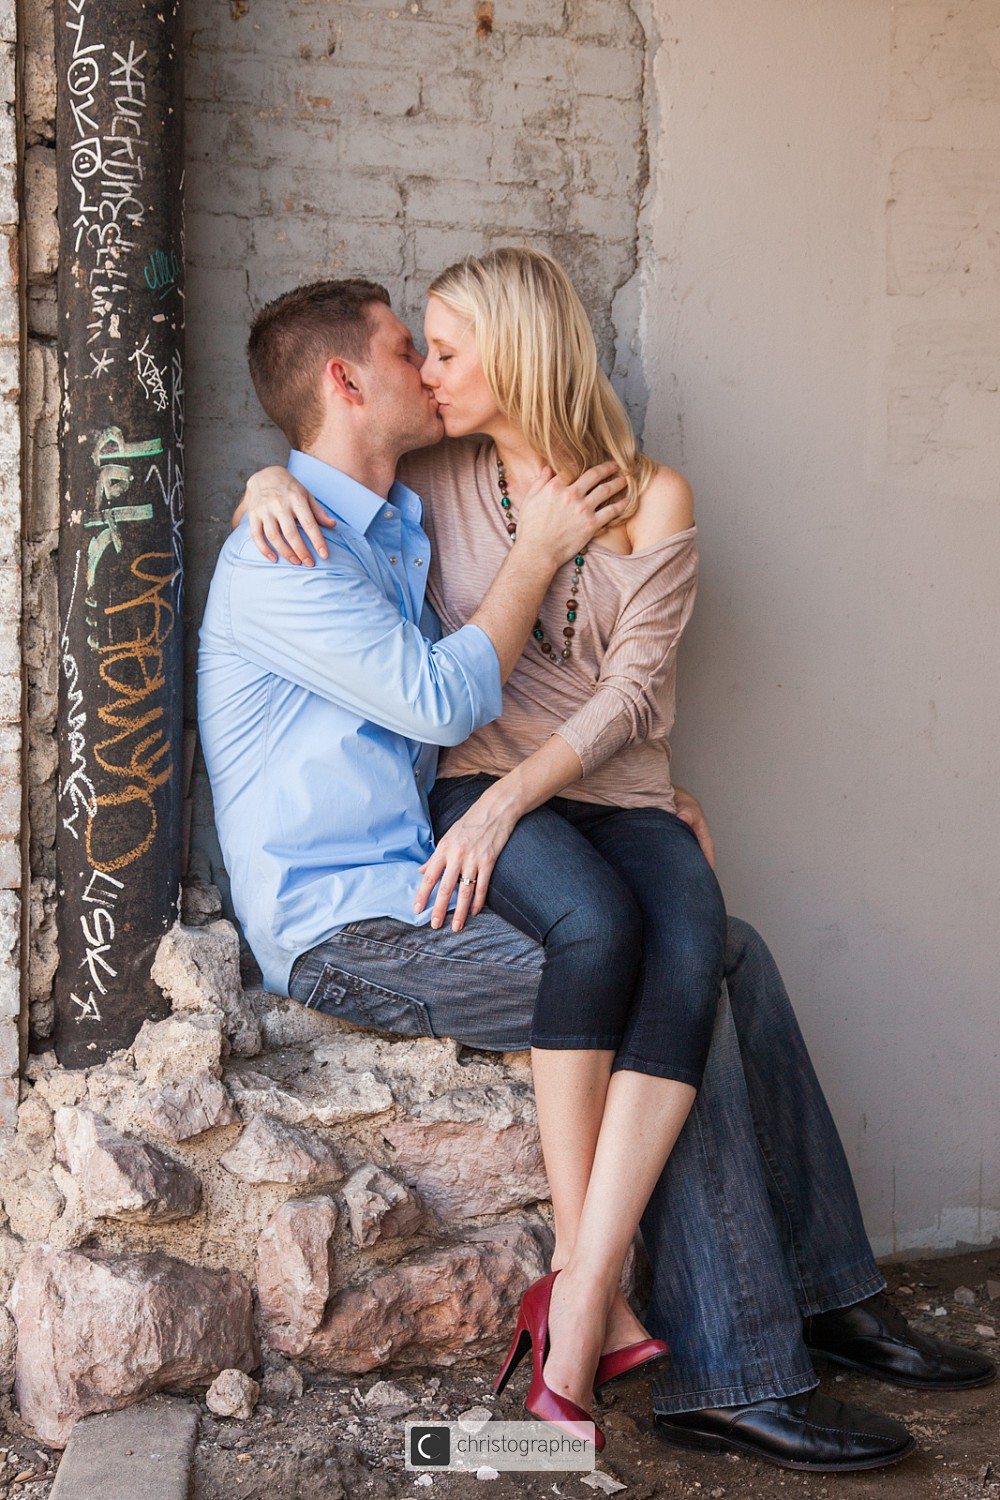 Ryan-Heather-Esession-73.jpg